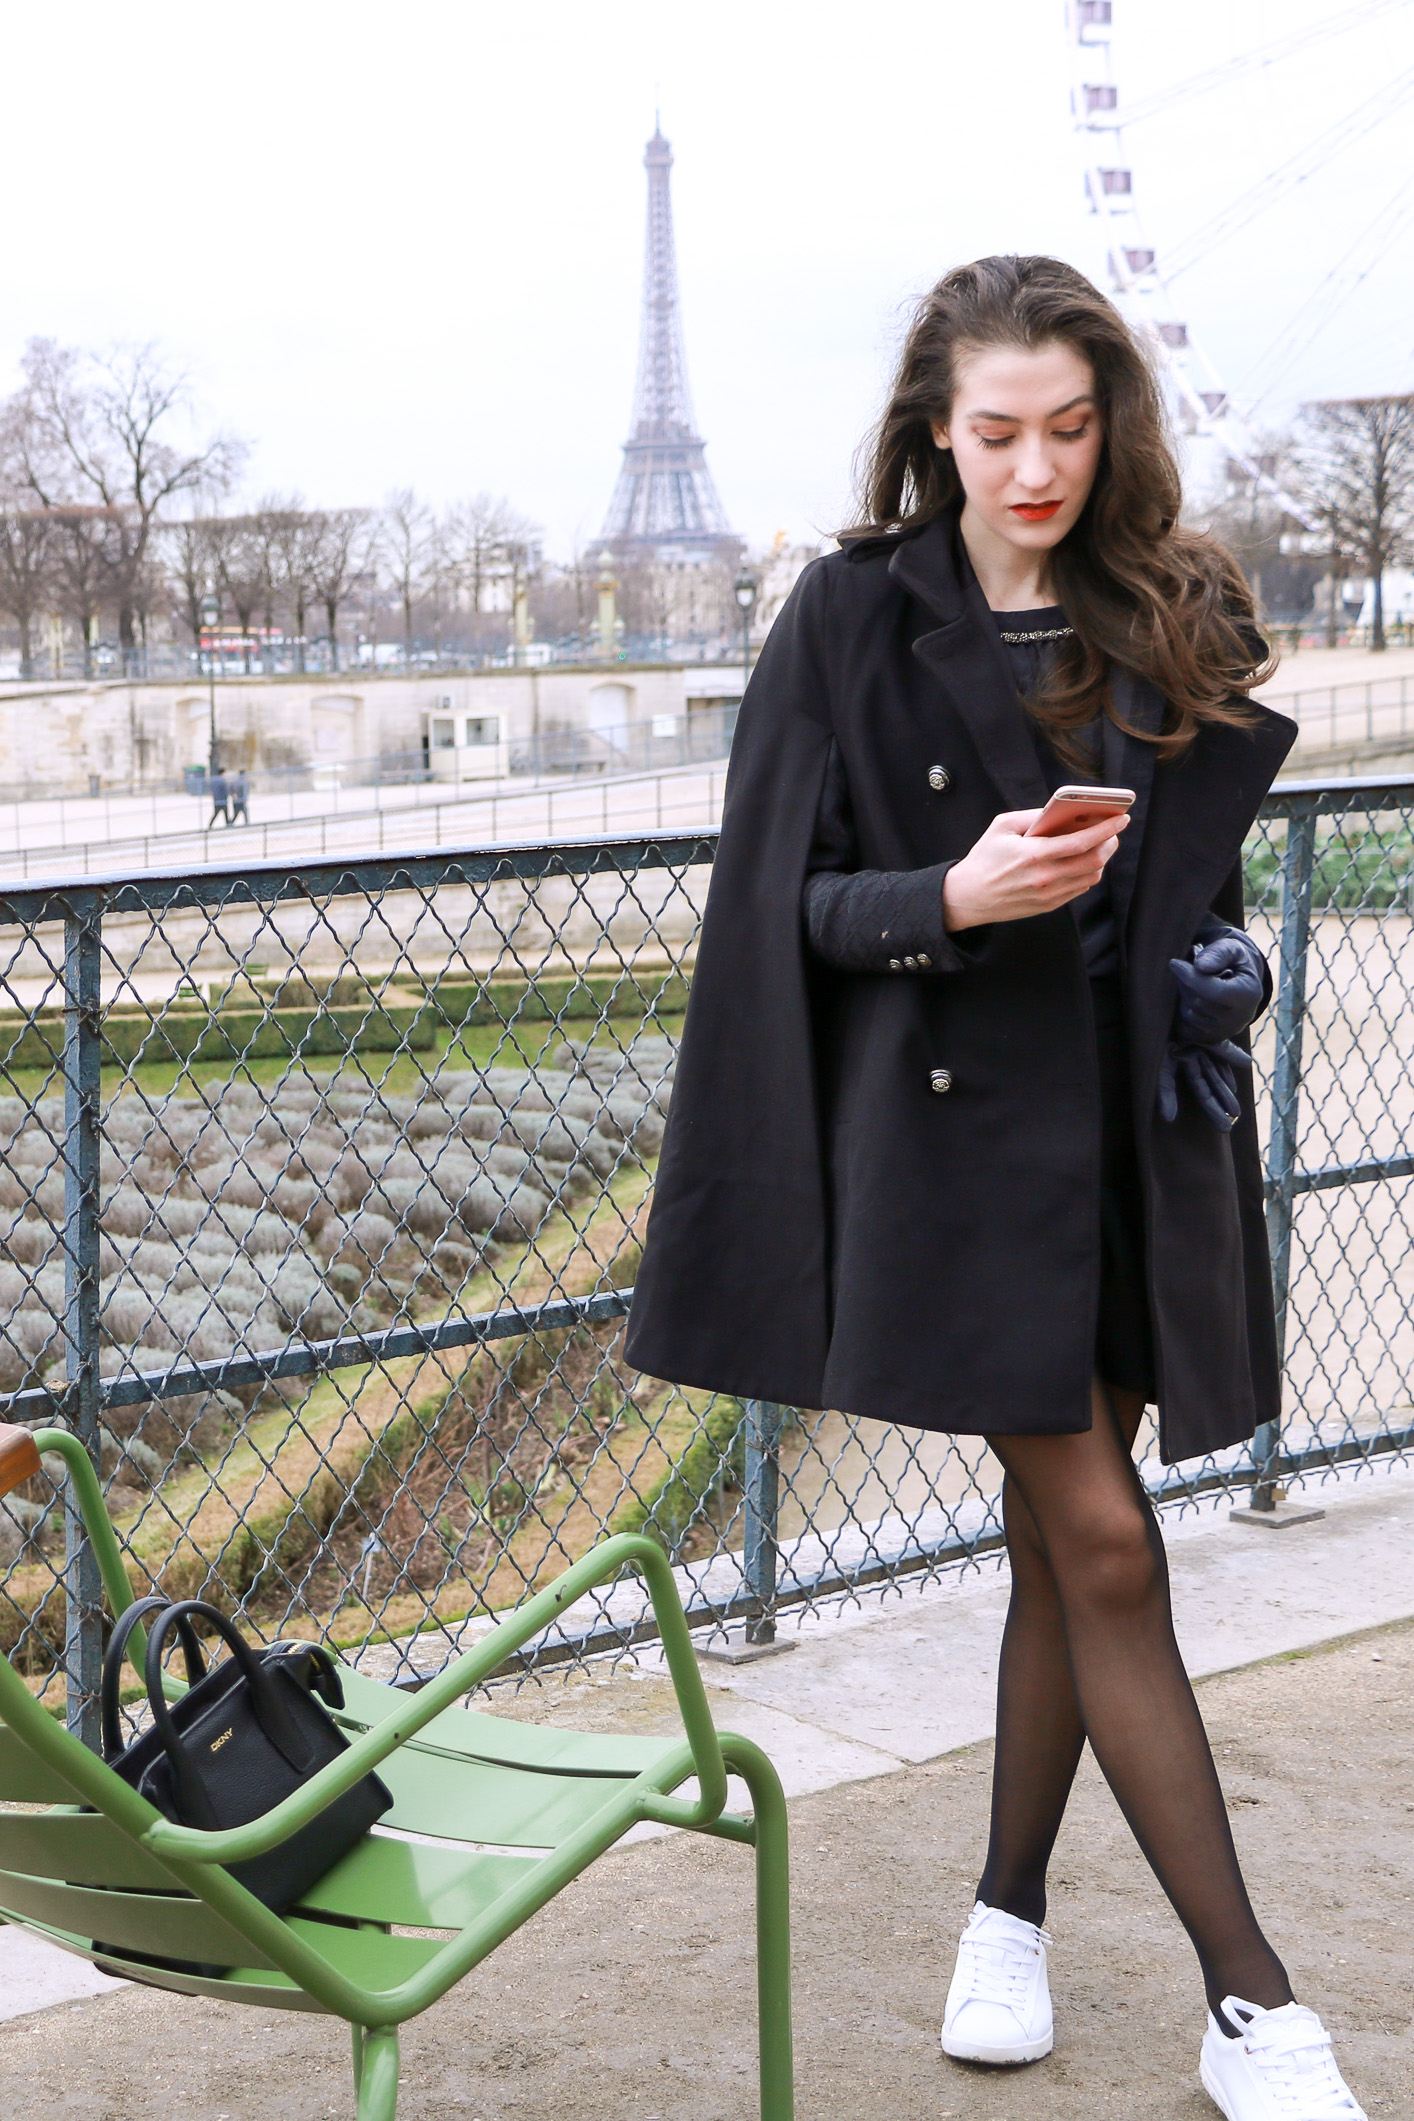 Fashion Blogger Veronika Lipar of Brunette from Wall Street sharing how to style chic black ruffled mini skirt, sexy black tights and white sneakers like a chic Parisian fashionista